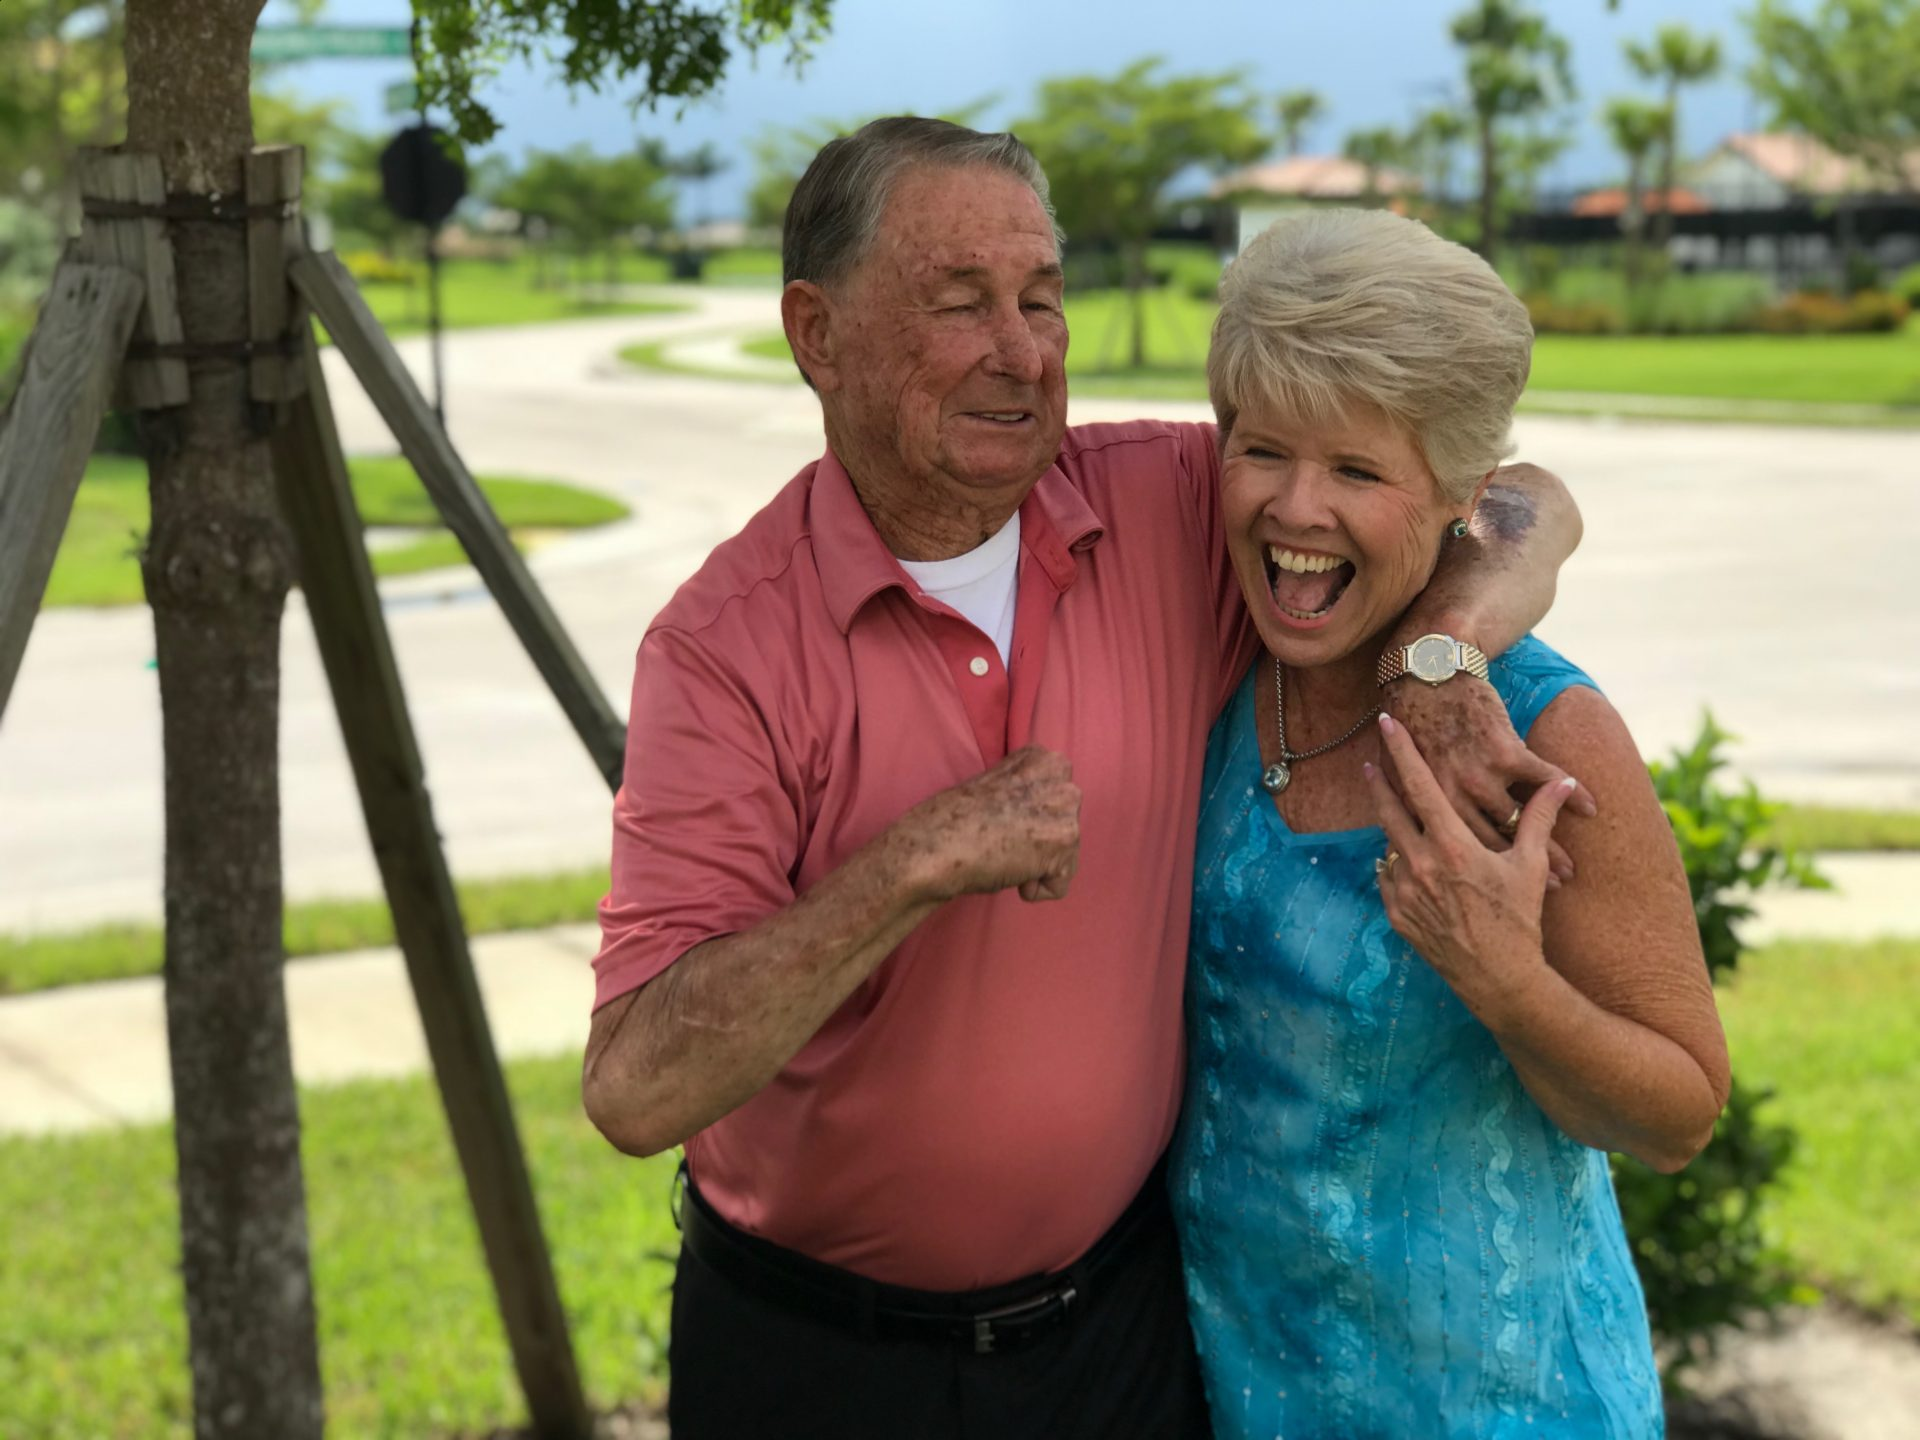 Diane & Mike - July 14th 2018